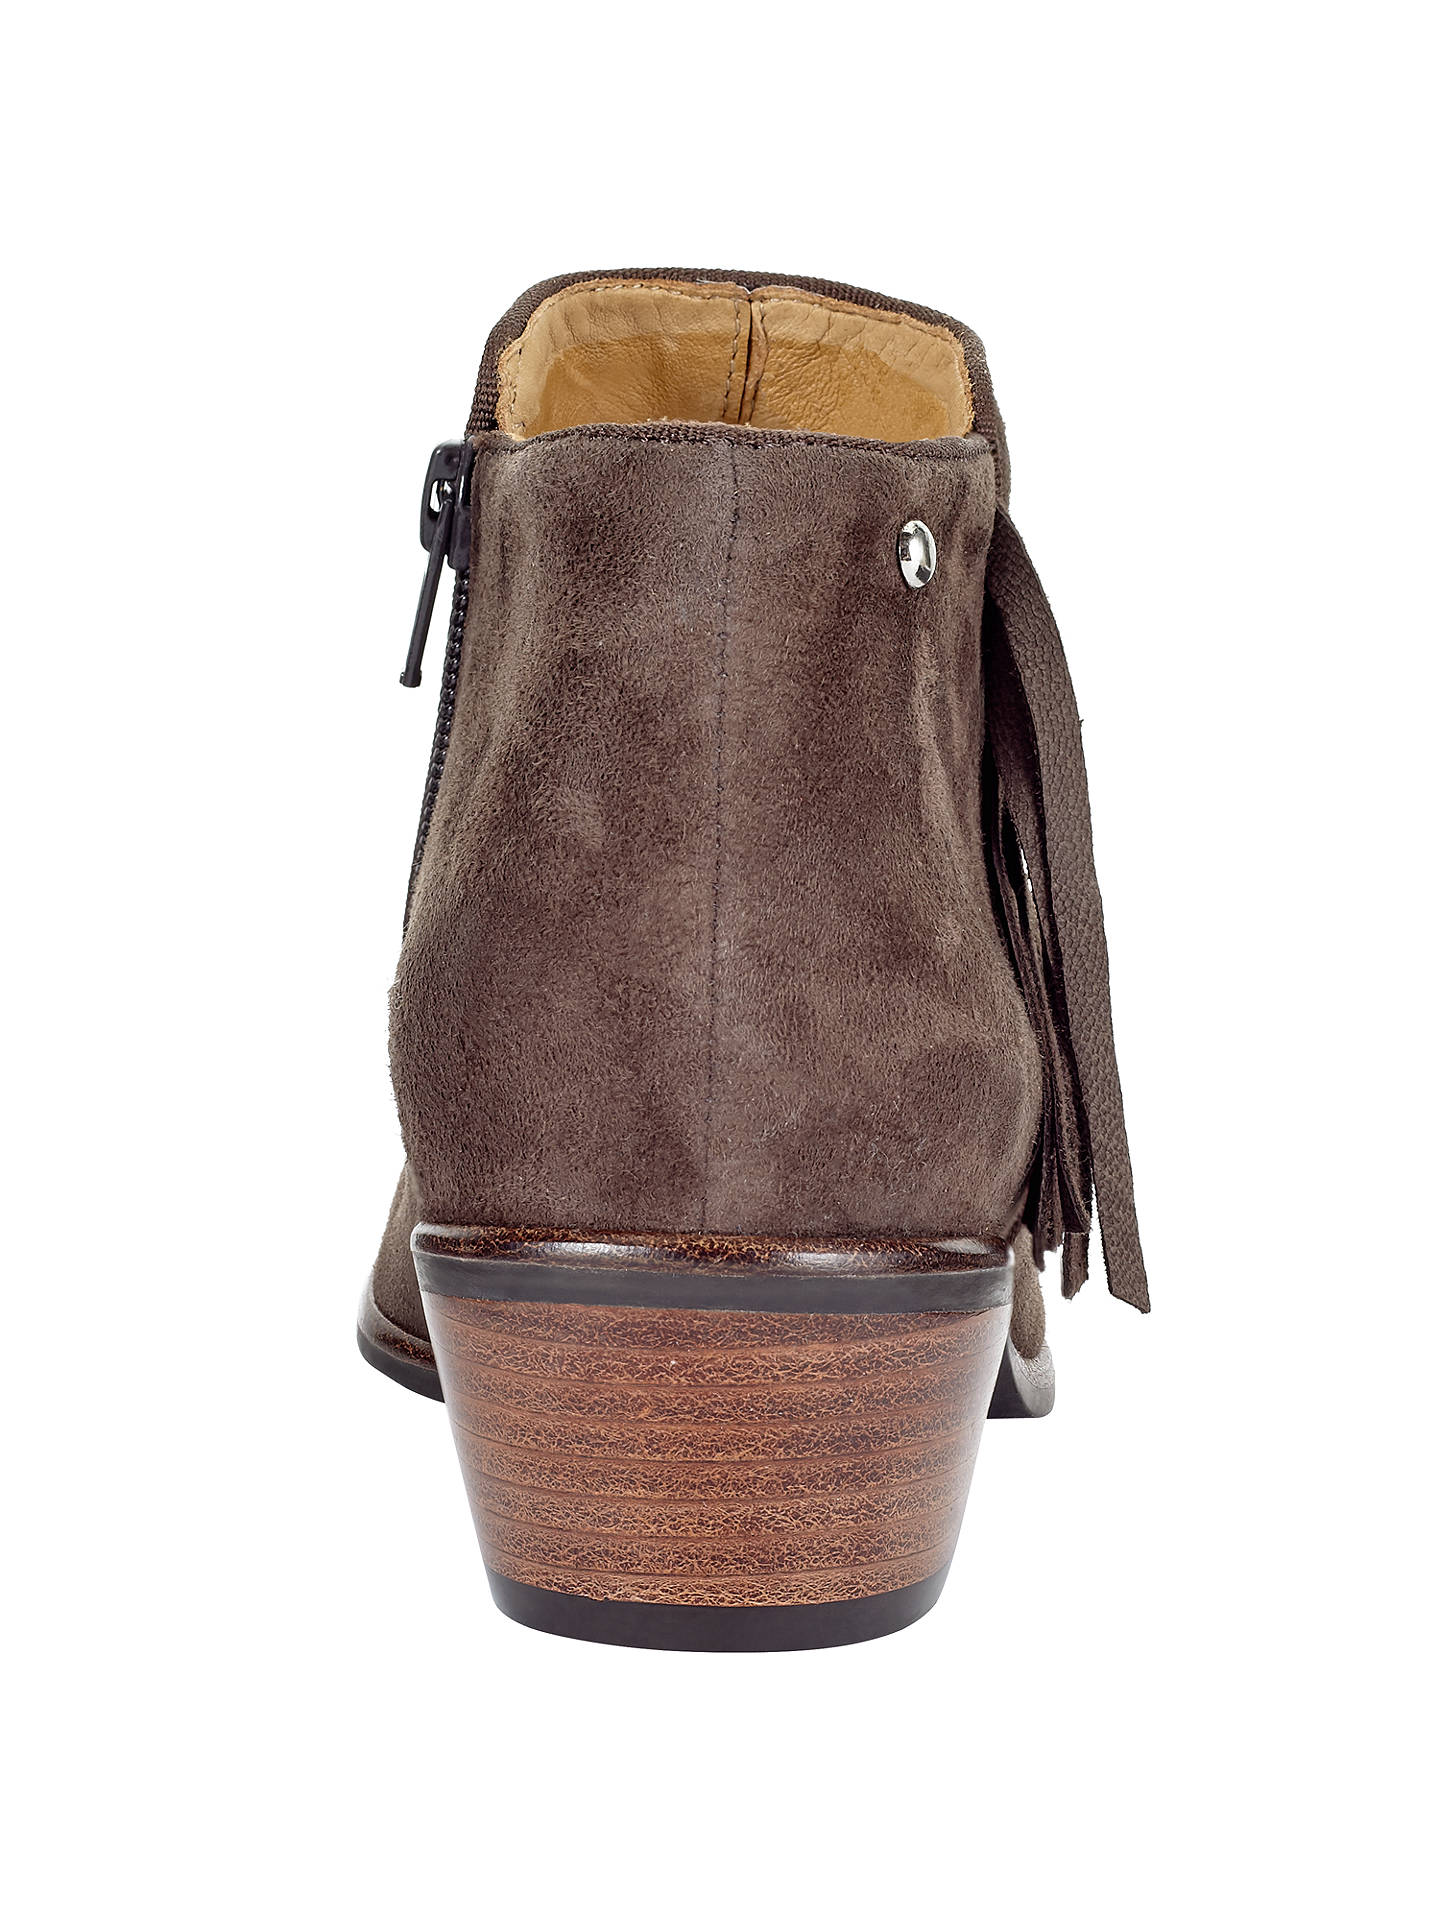 63e0615c8d0 John Lewis Pagan Western Ankle Boots, Brown Nubuck at John Lewis ...